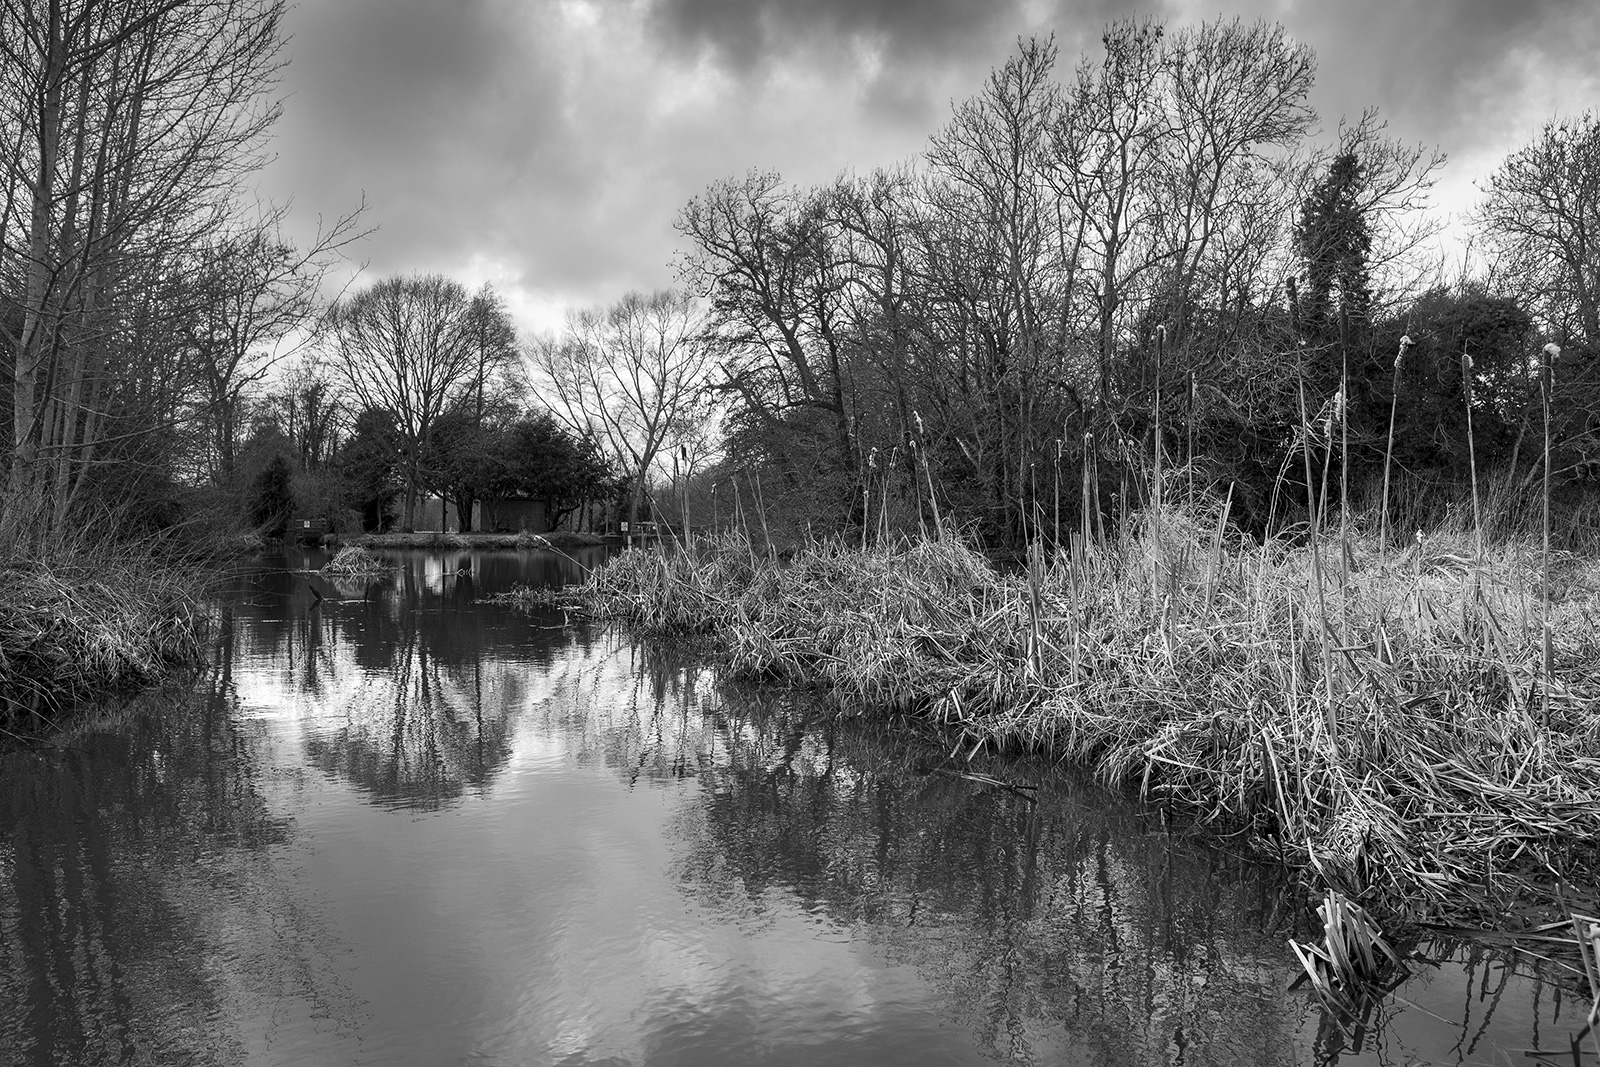 Winter view downstream along river Ouse at East Sussex UK black and white rural landscape ©P. Maton 2019 eyeteeth.net